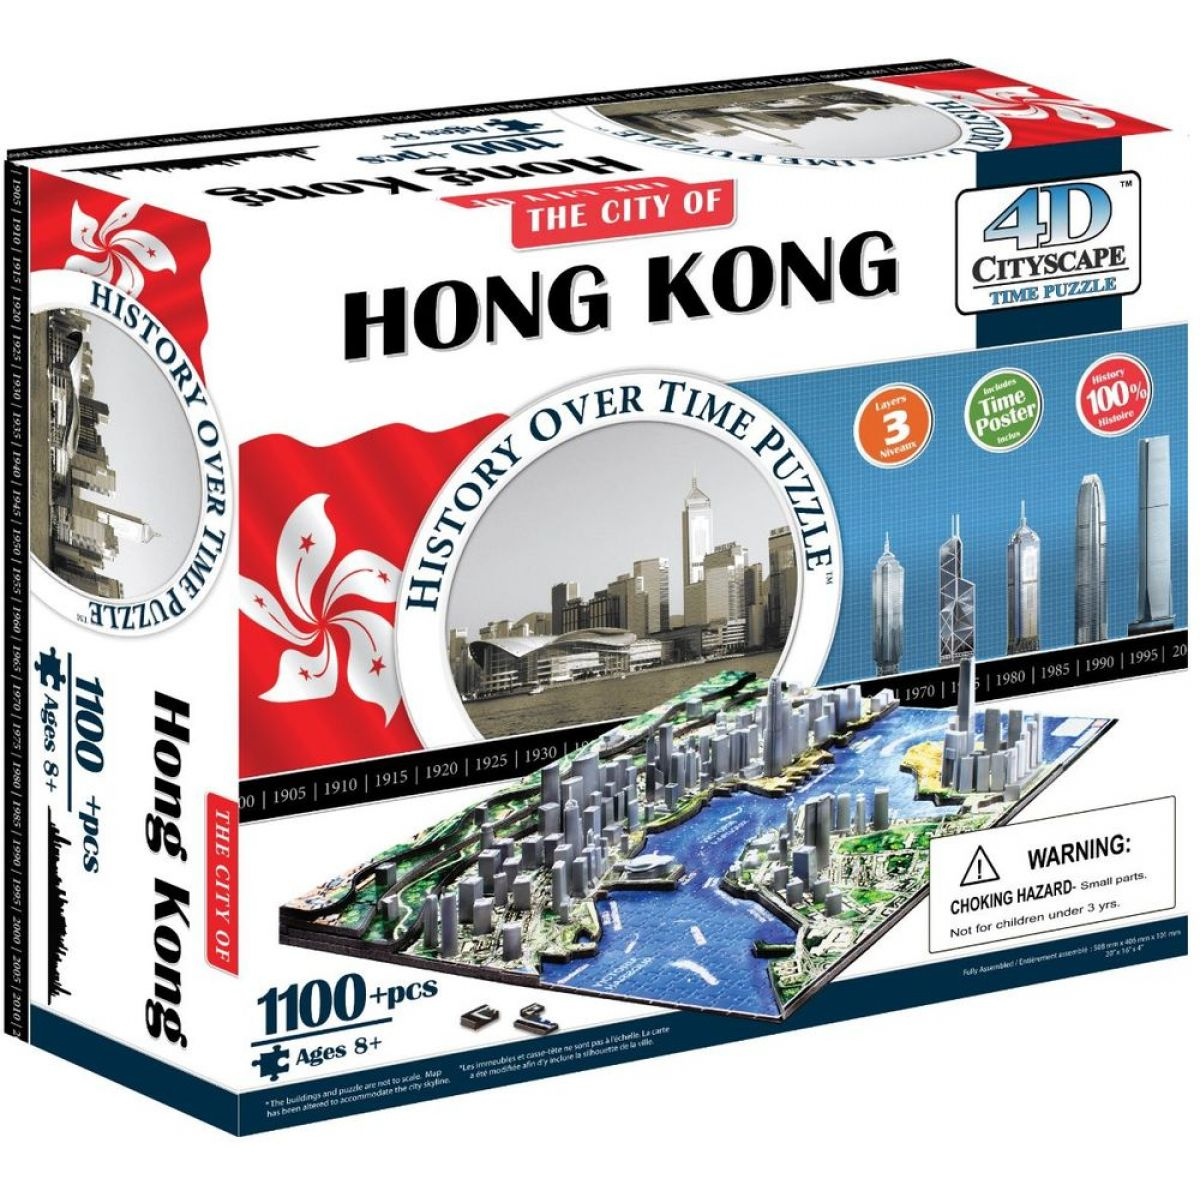 4D Cityscape puzzle Time panorama Hong Kong